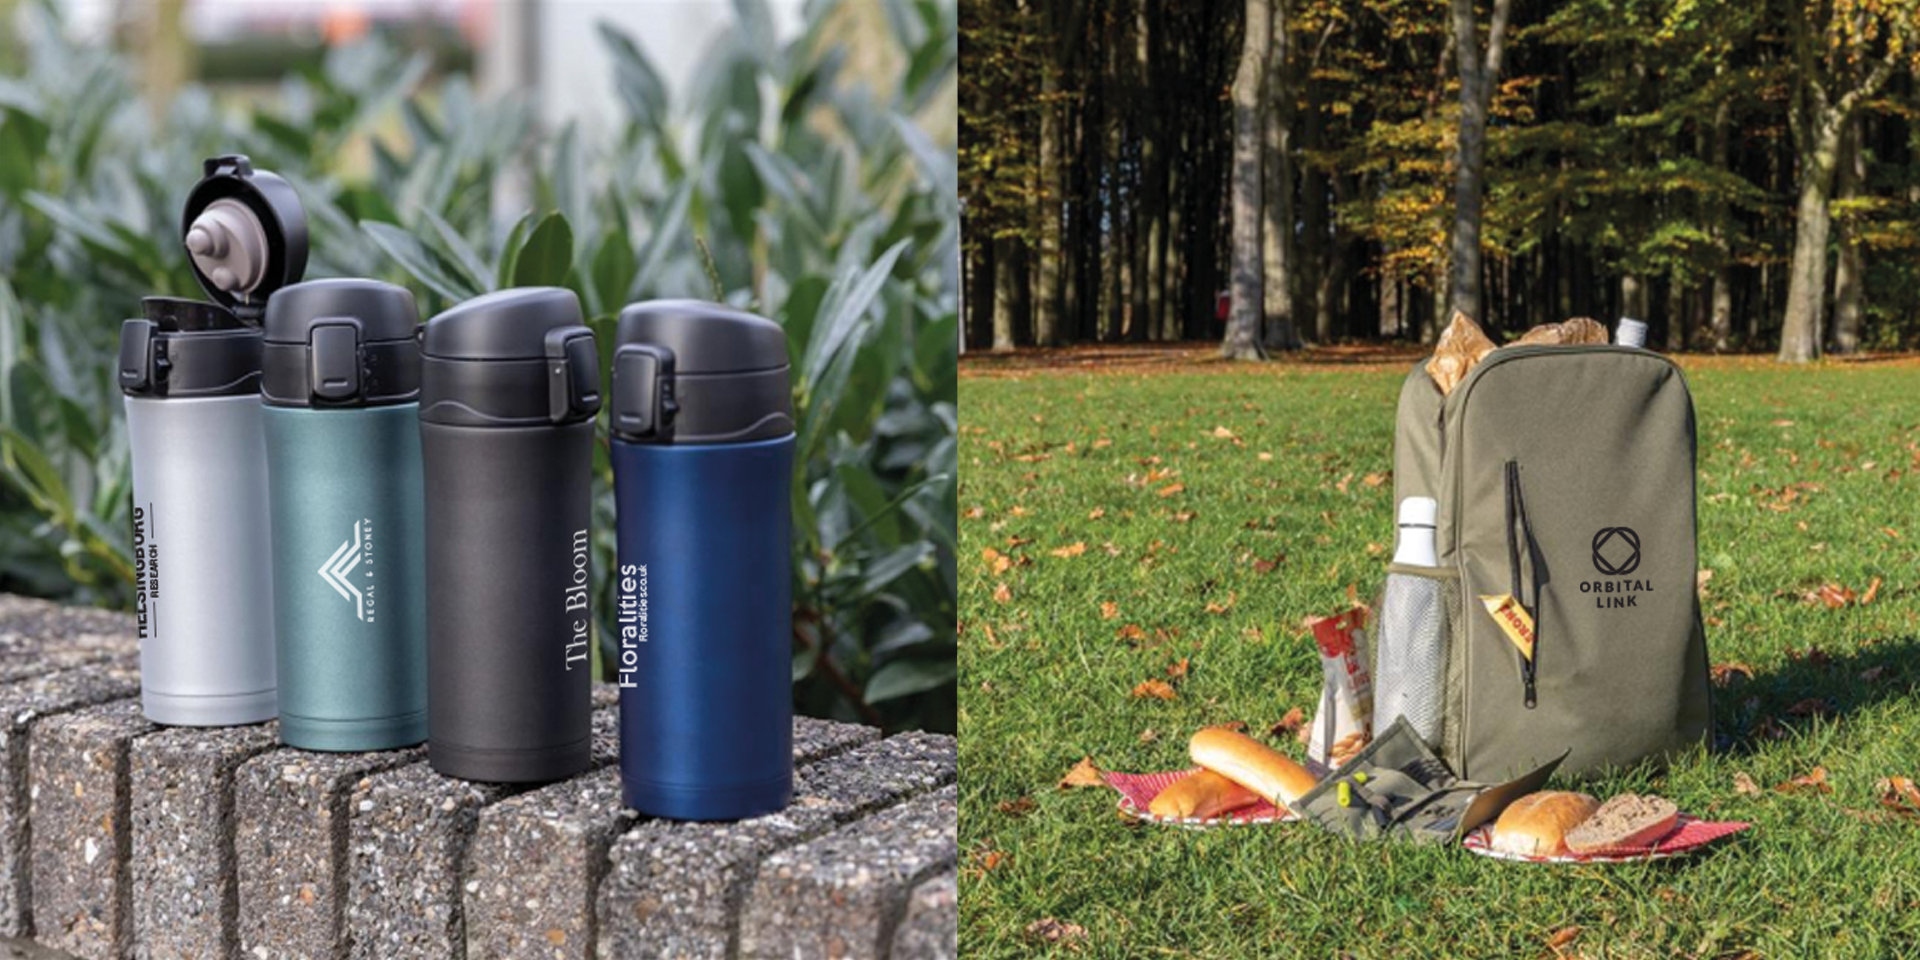 Cool bags with branding and stainless steel vacuum mug printed.